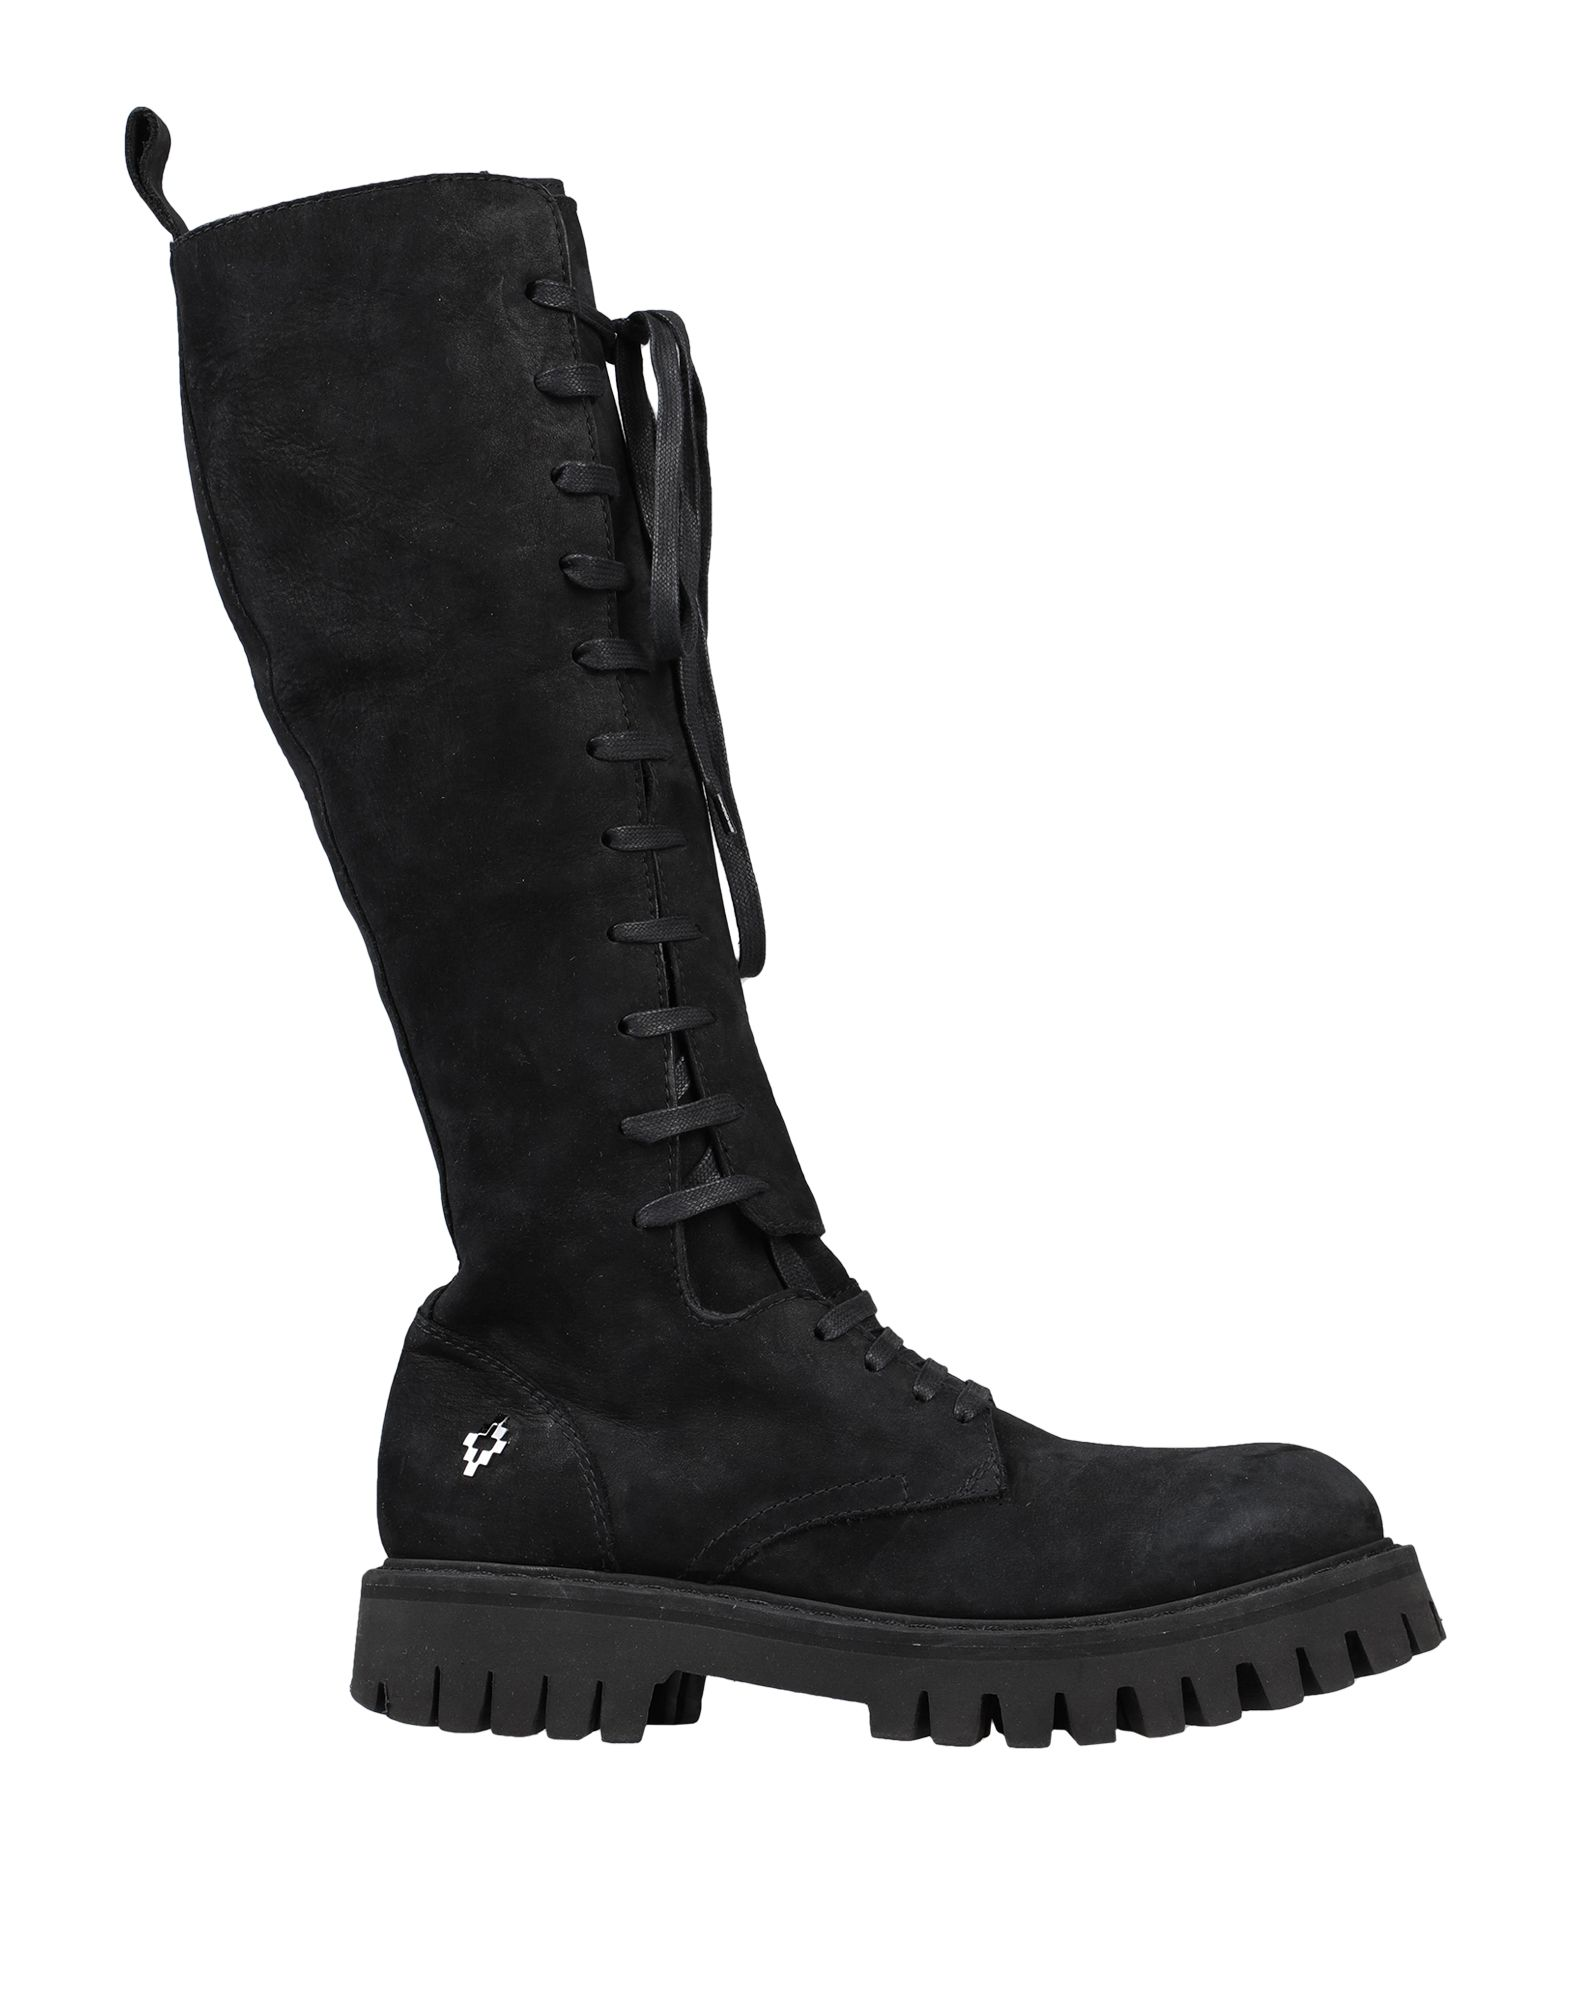 MARCELO BURLON Boots. leather, nubuck, logo, solid color, zip, round toeline, square heel, rubber lining, lug sole, contains non-textile parts of animal origin. Soft Leather